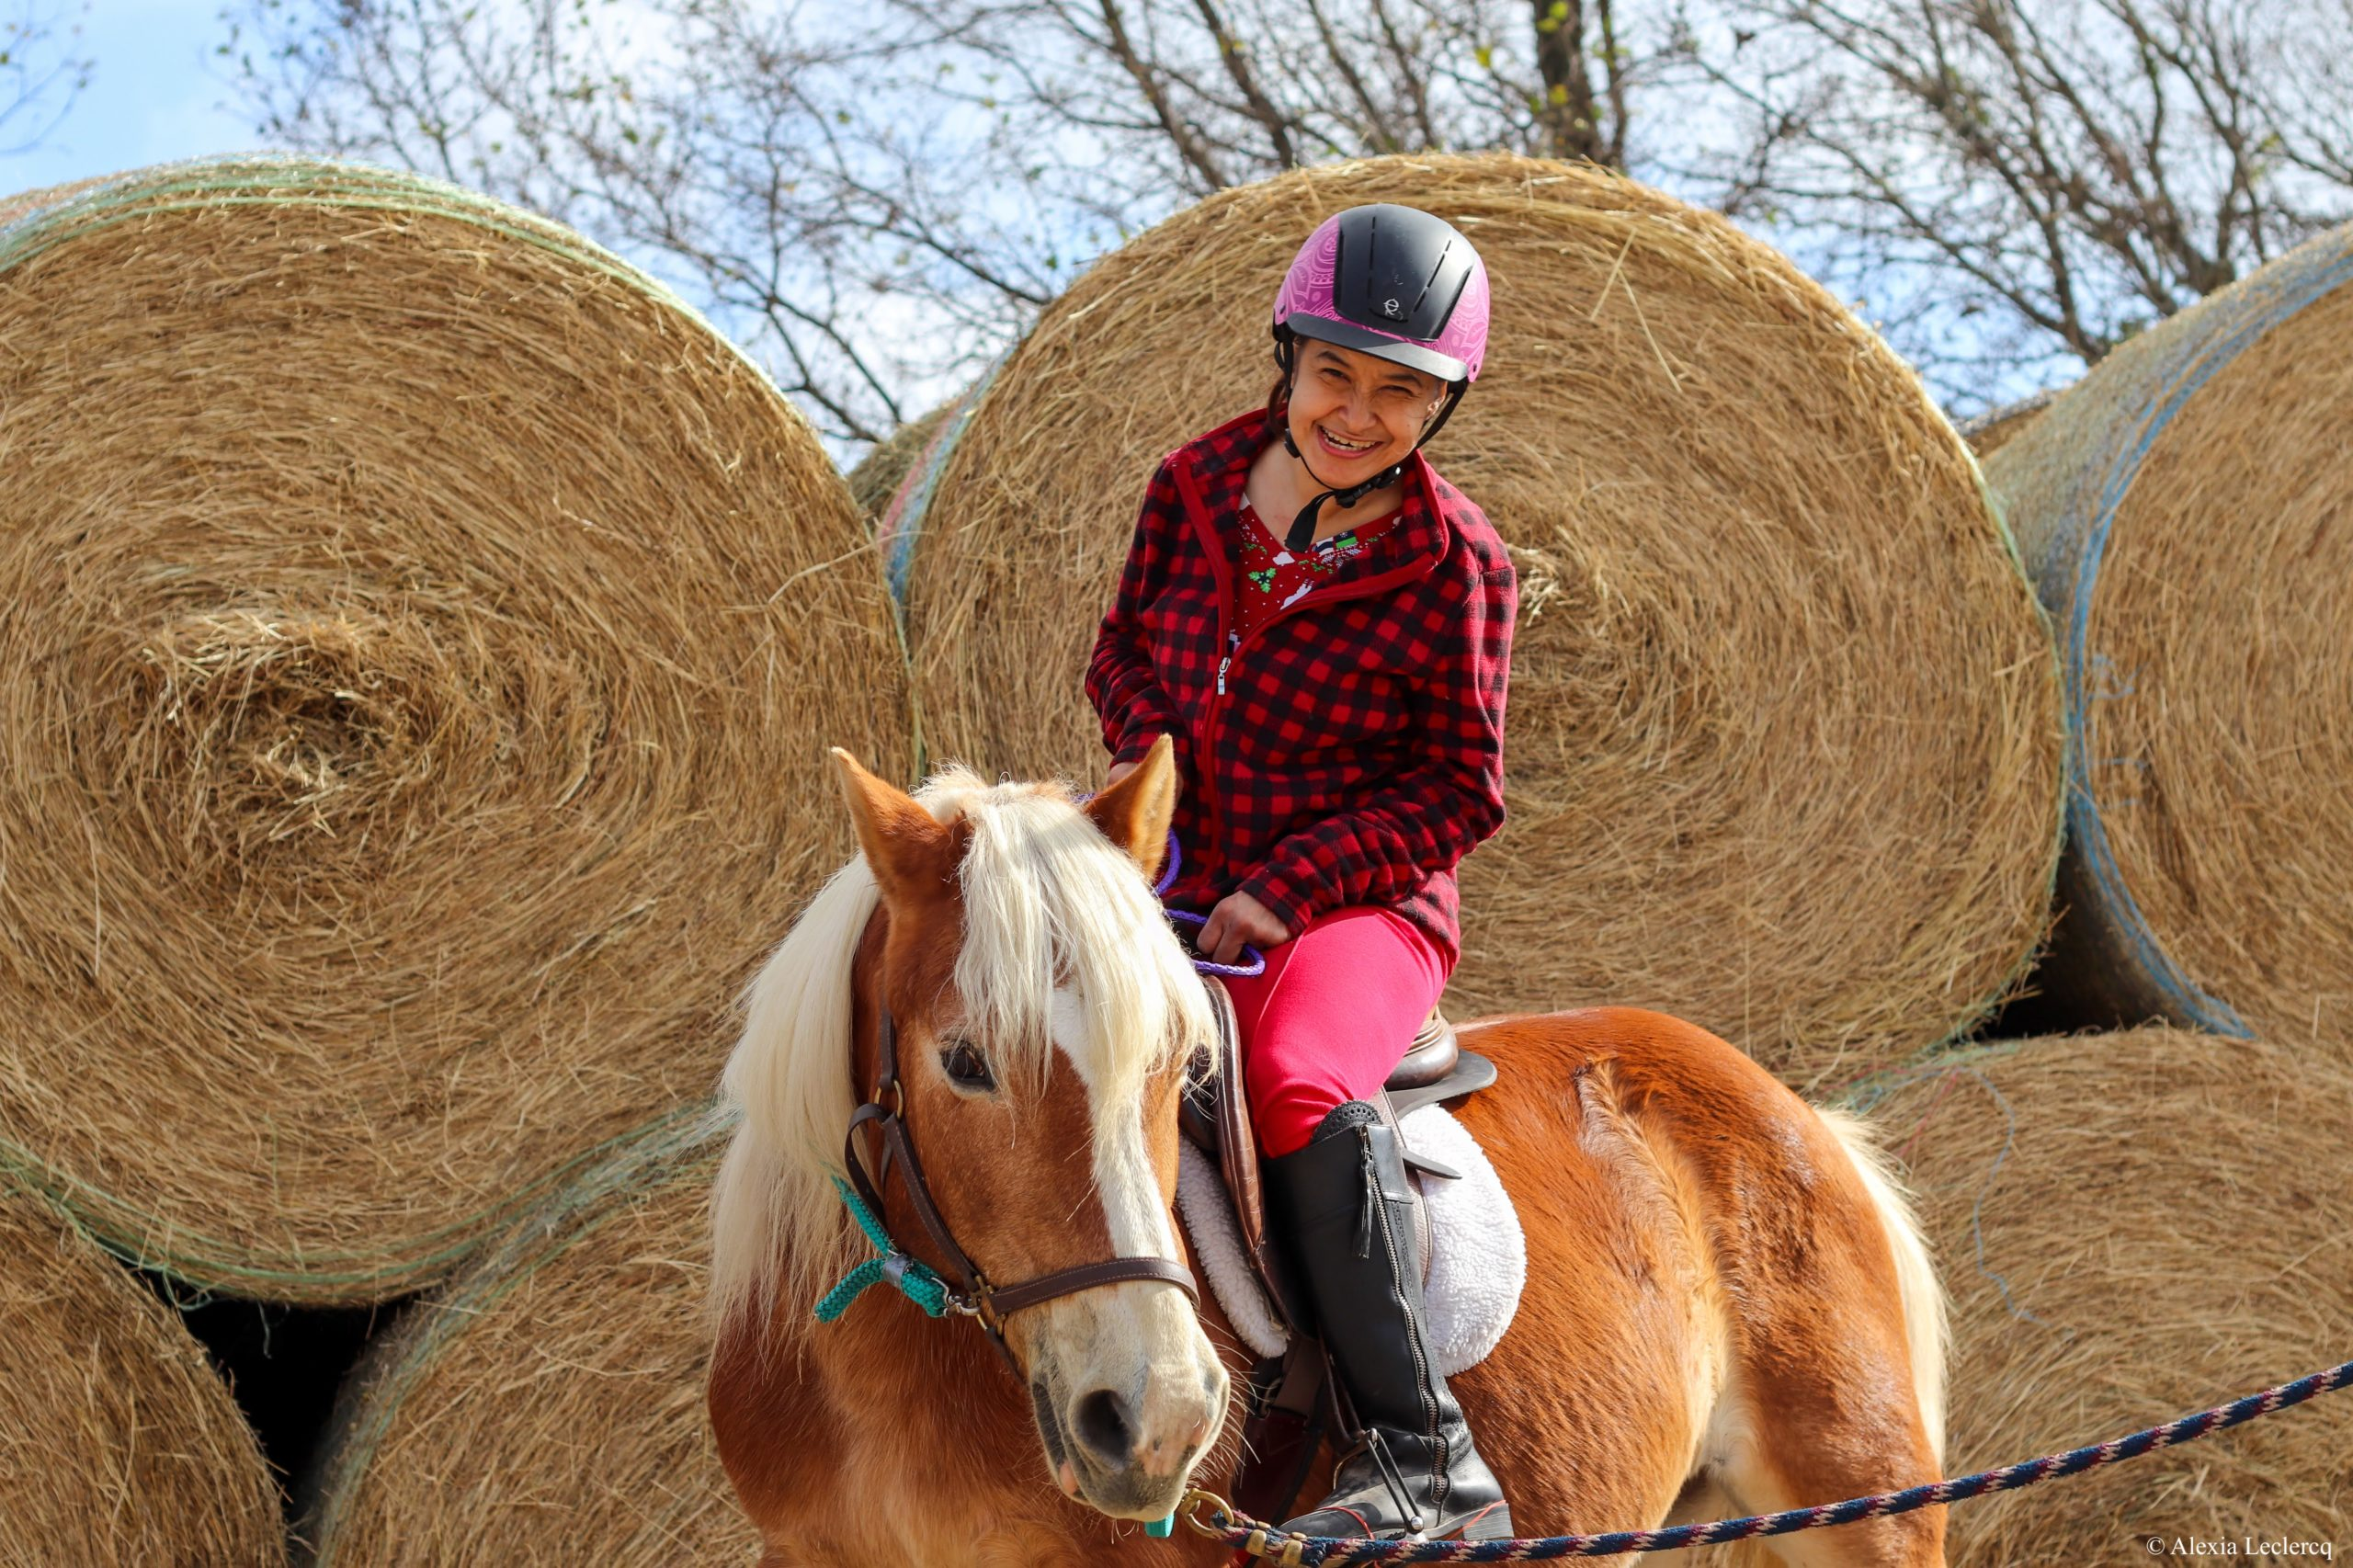 Student and horse, Story, in front of the hay bales.